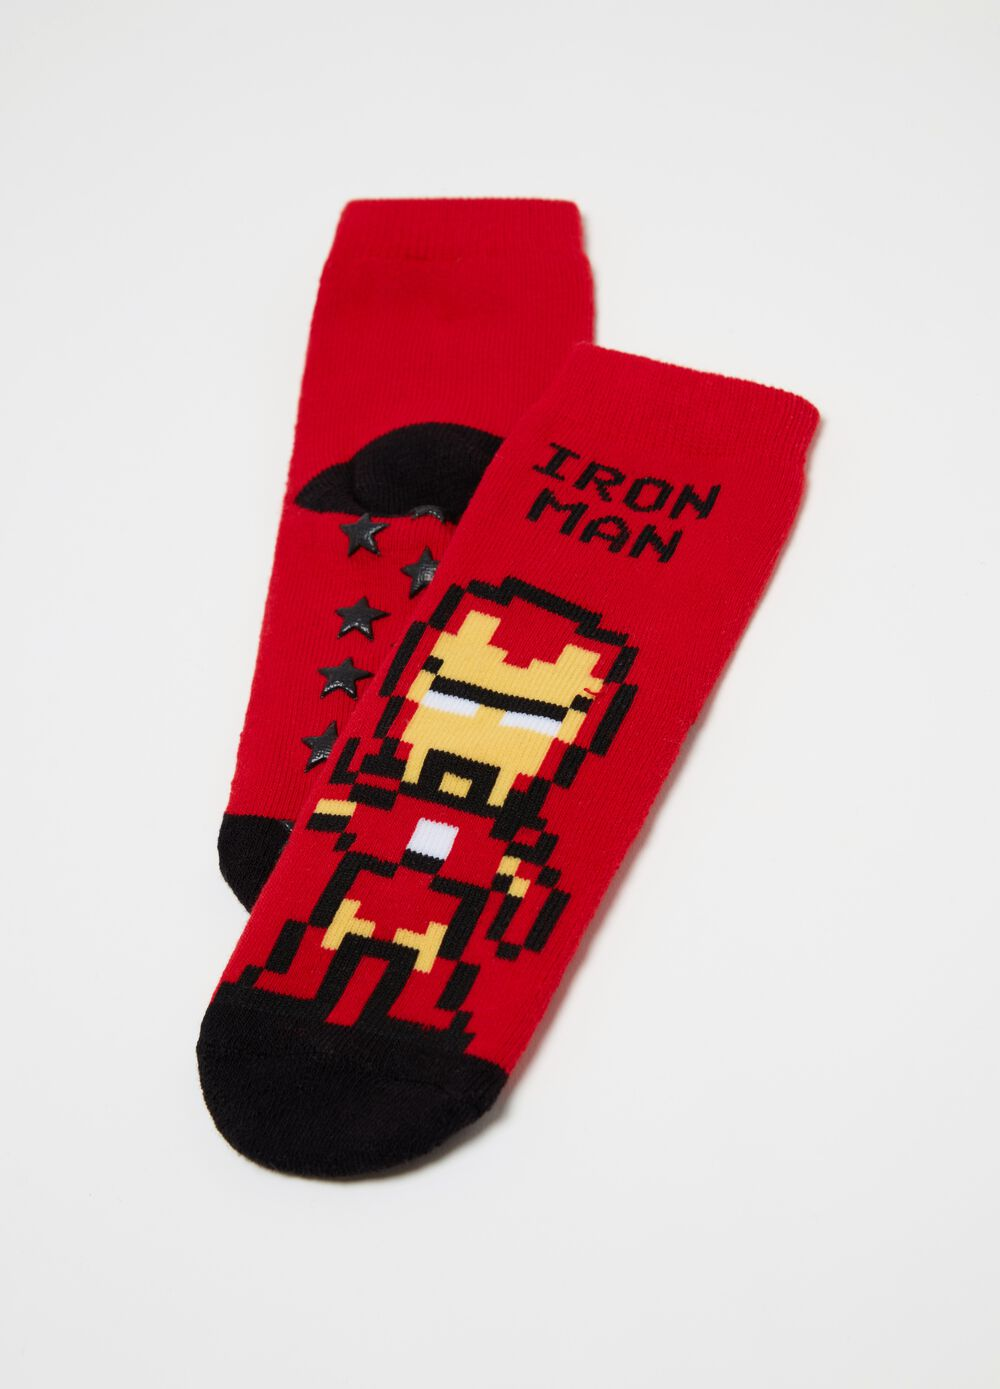 Iron Man slipper socks